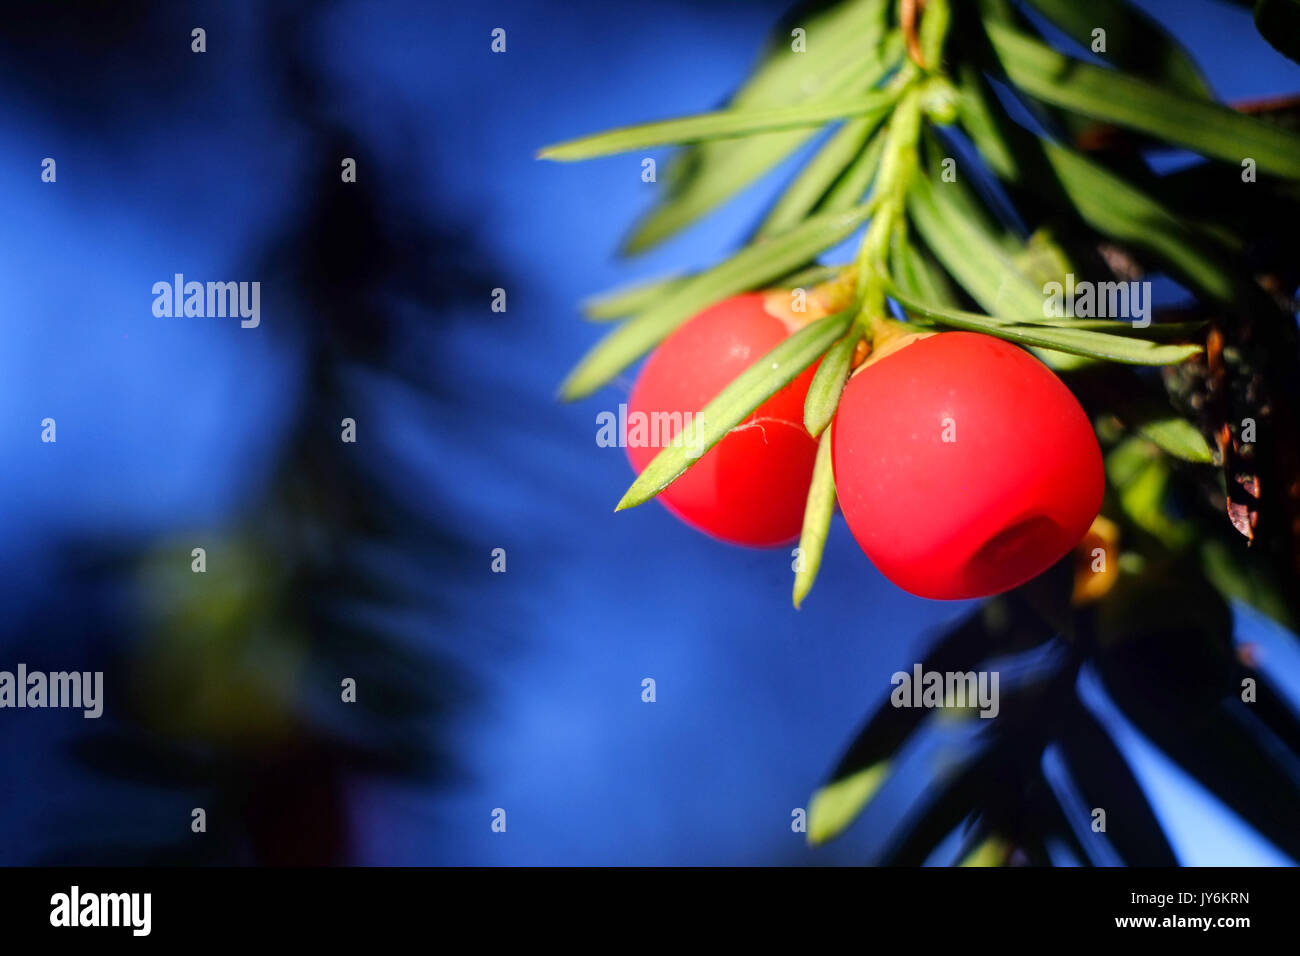 Ripe yew tree berries, or arils, the only edible part of the toxic yew tree. - Stock Image